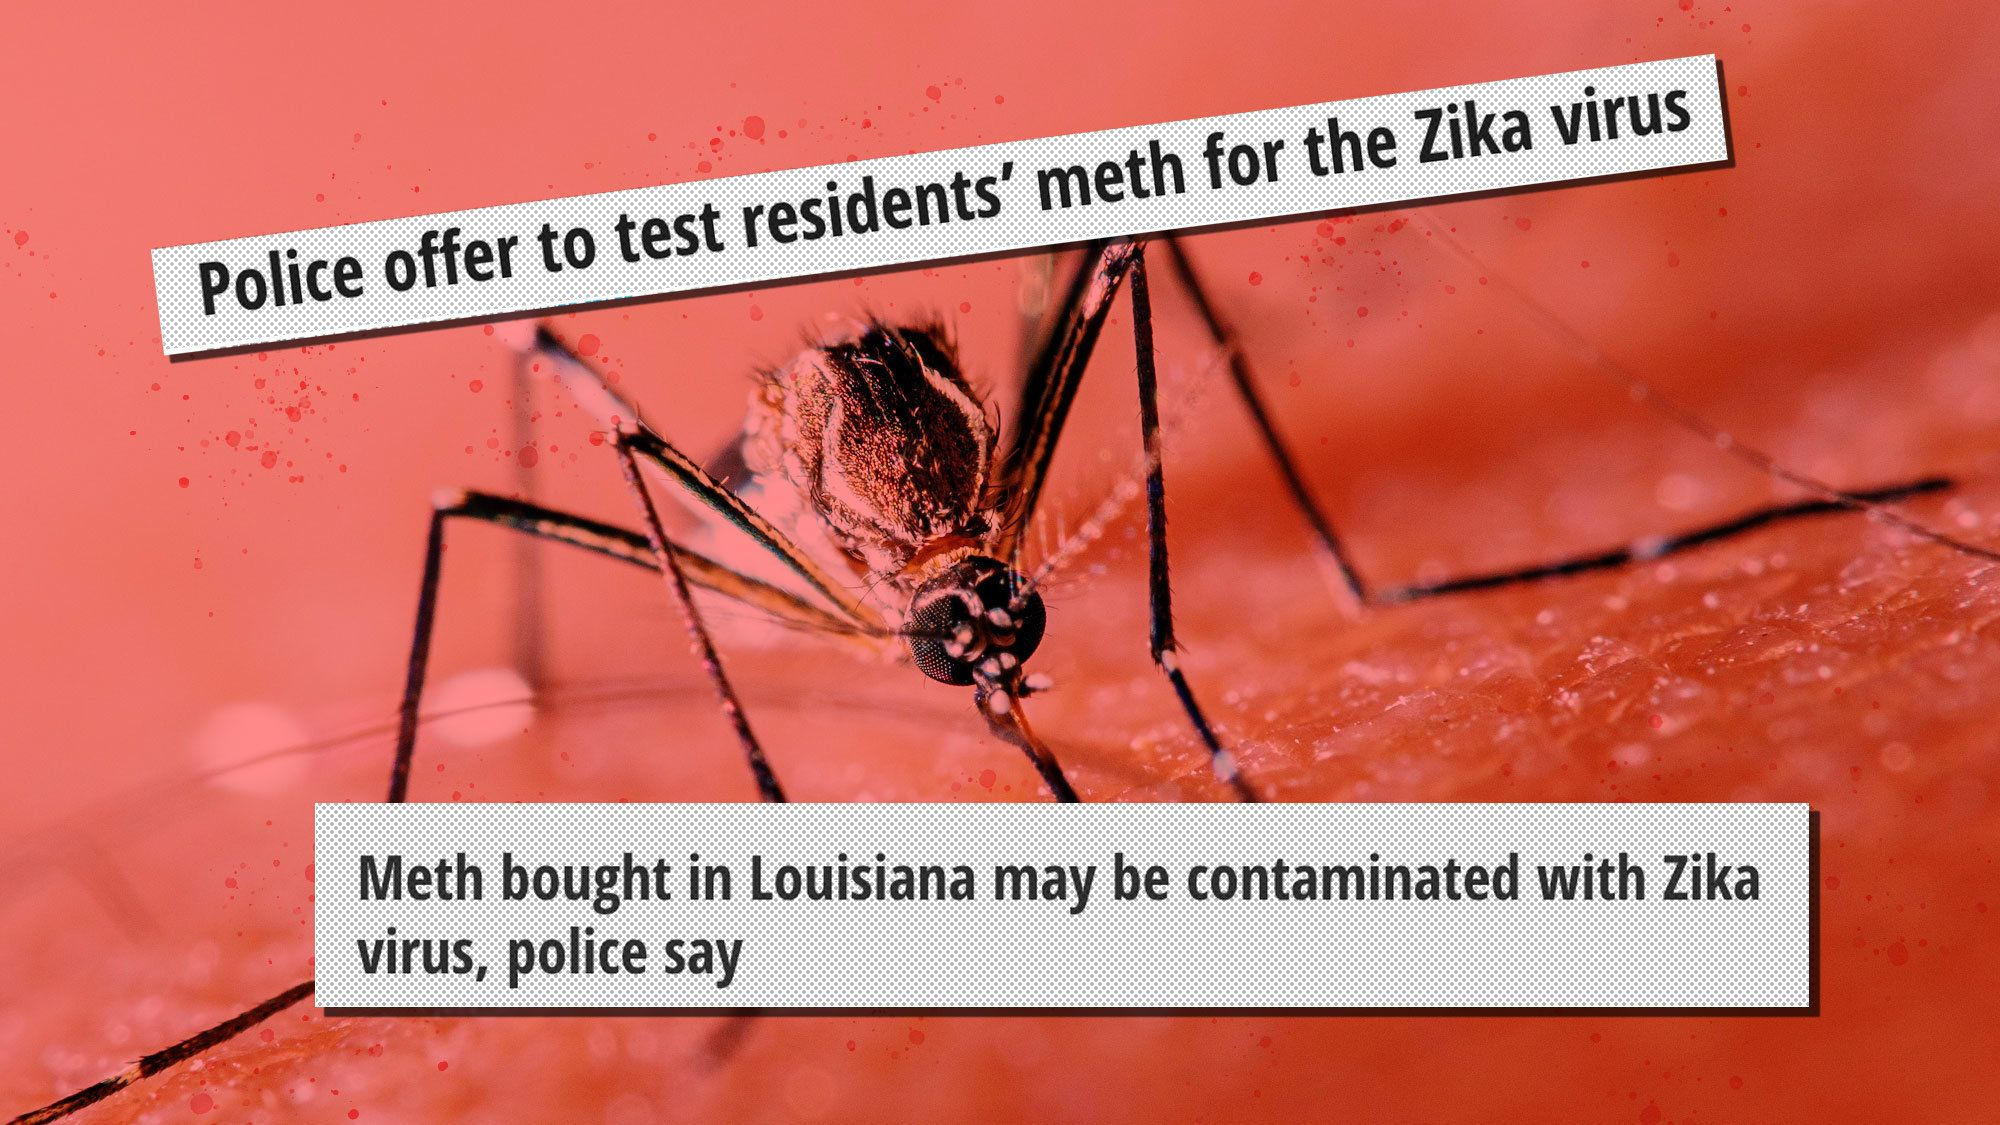 Louisiana police department offers to test meth for Zika